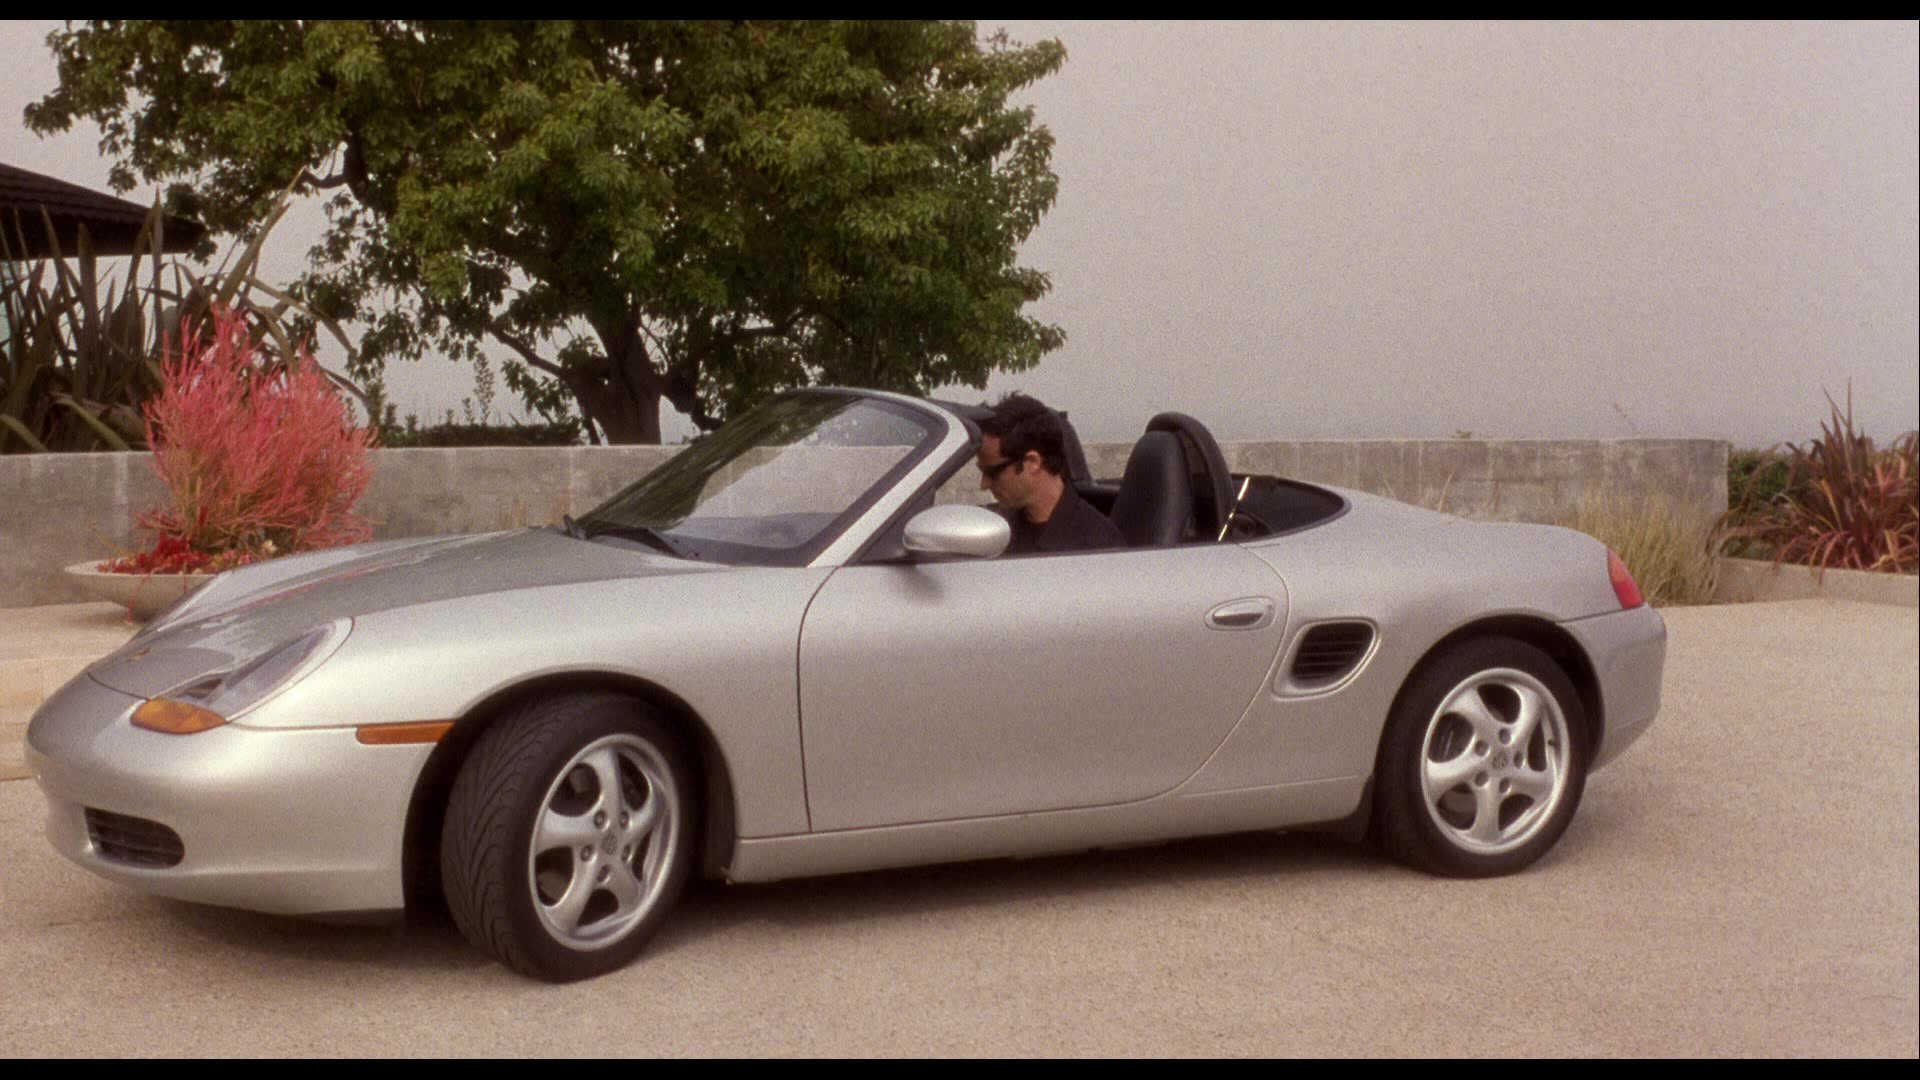 Porsche Boxster 986 Convertible Sports Car Used By